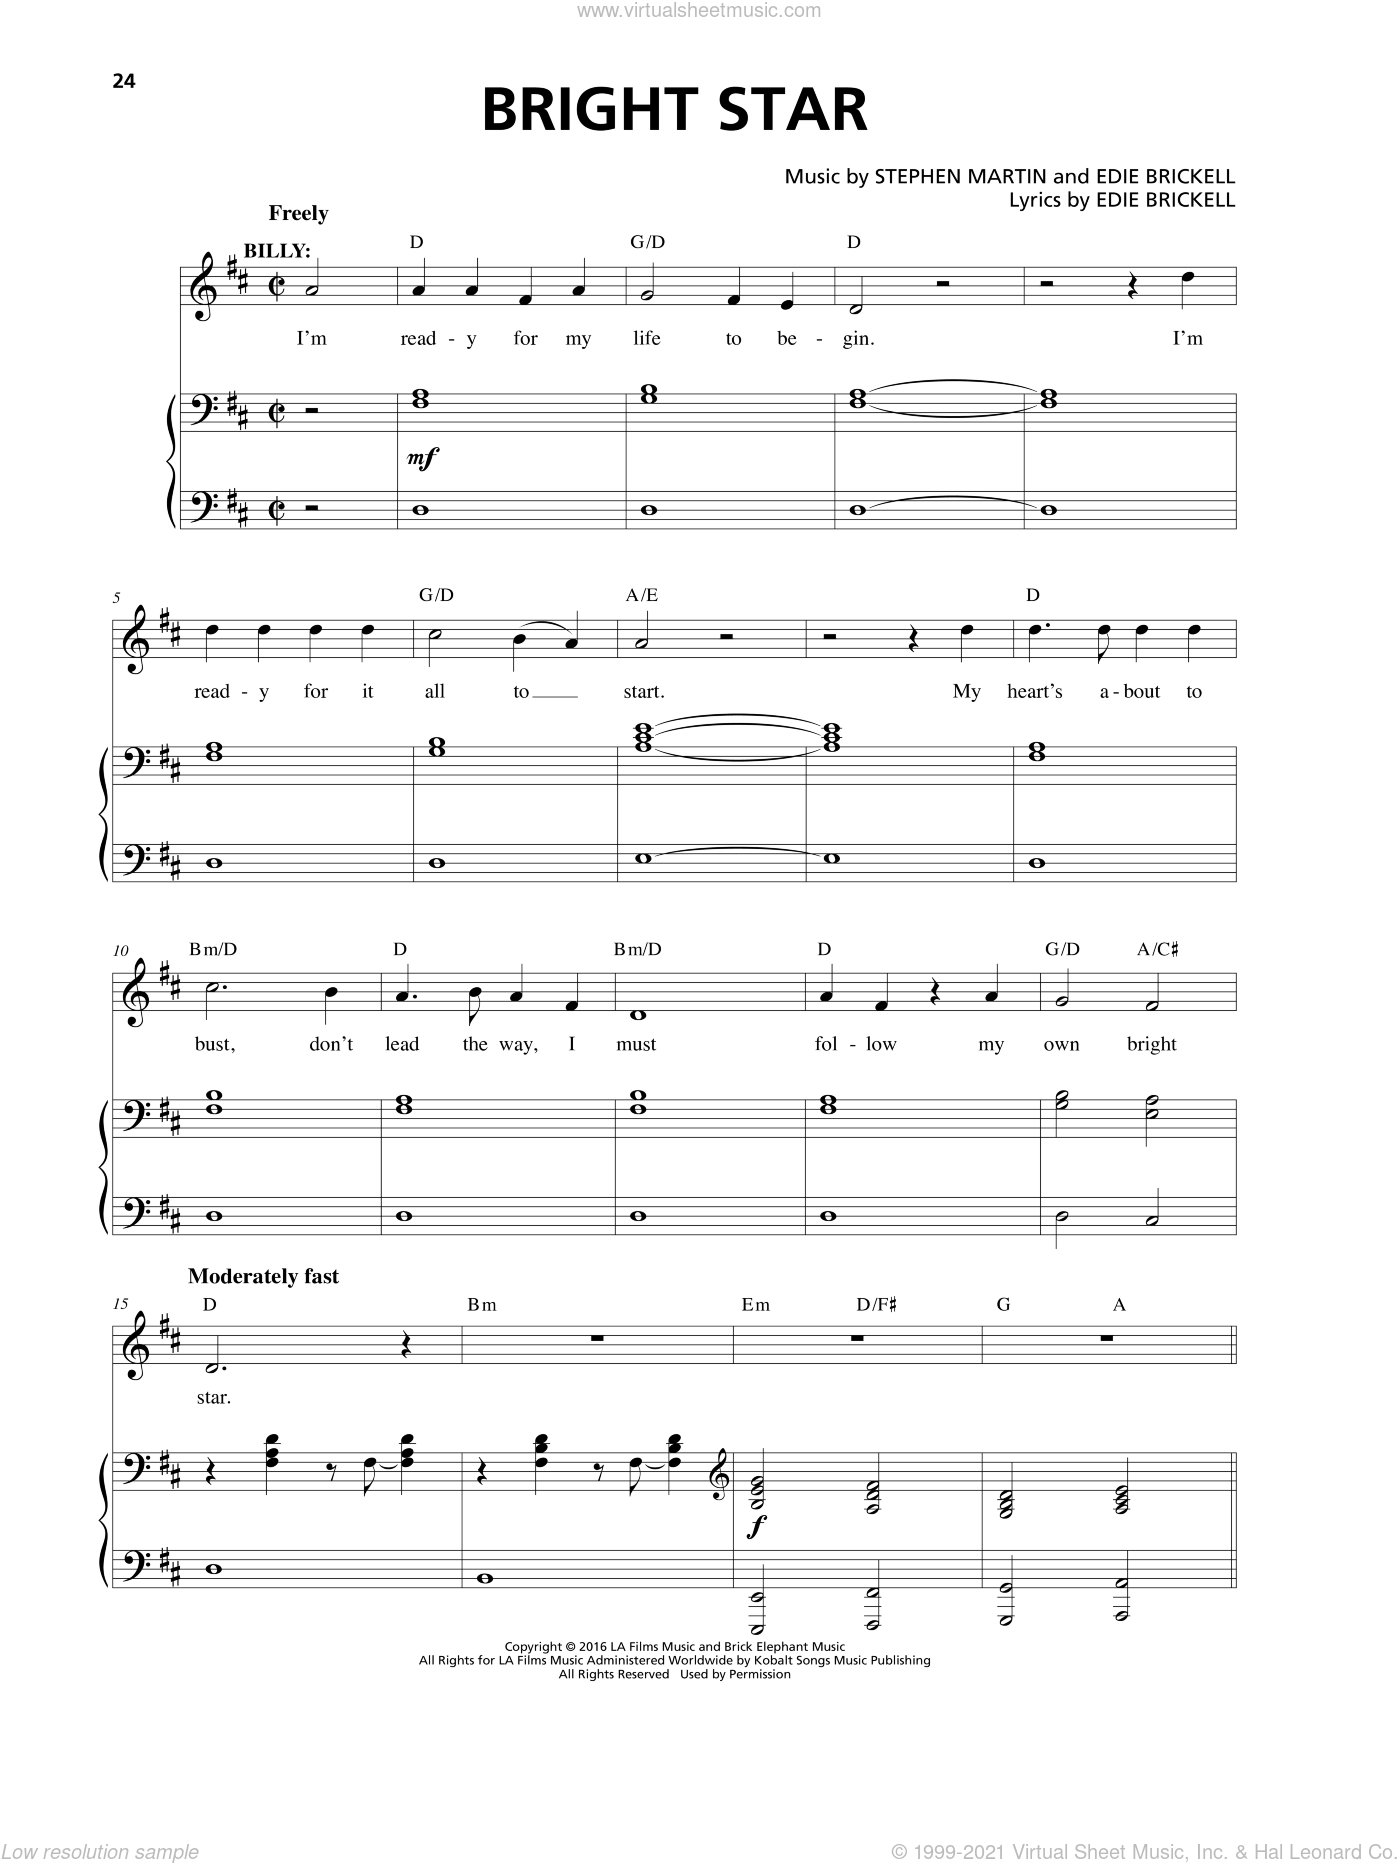 Bright Star sheet music for voice and piano by Edie Brickell, Stephen Martin and Stephen Martin & Edie Brickell, intermediate. Score Image Preview.